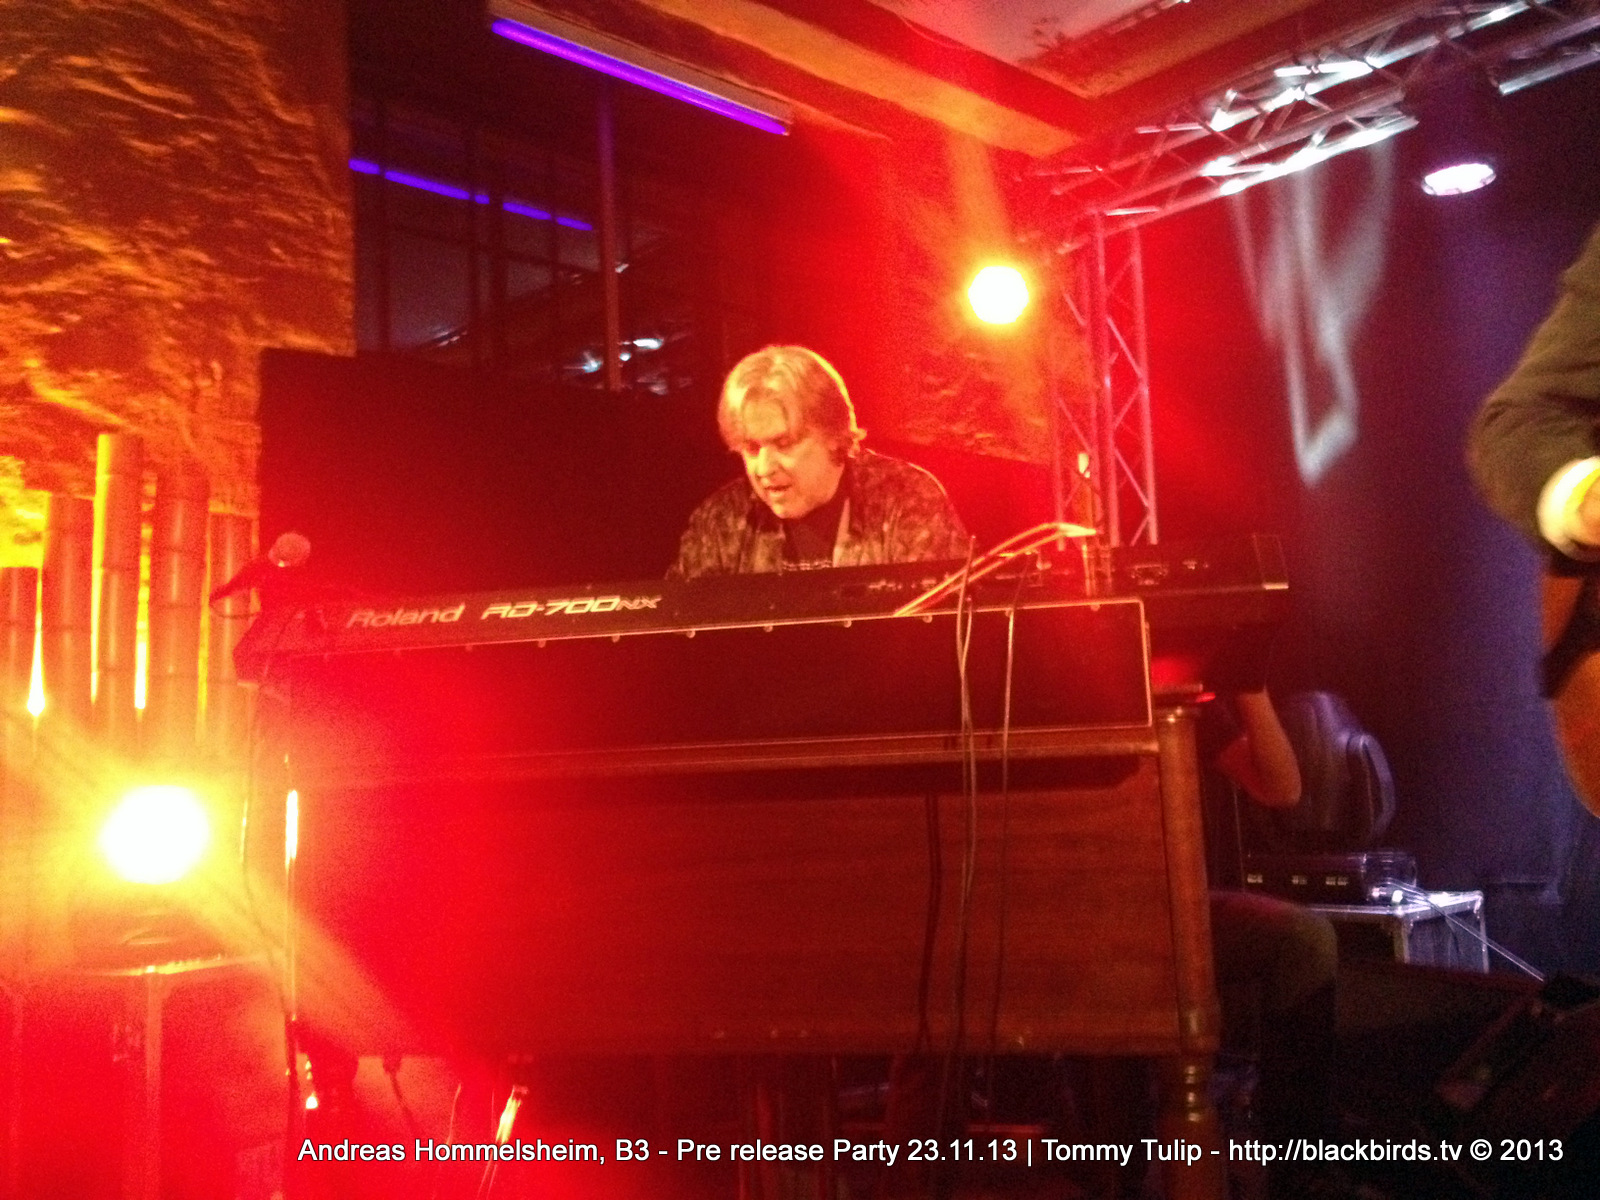 Andreas Hommelsheim, B3 - Pre release Party 23.11.13